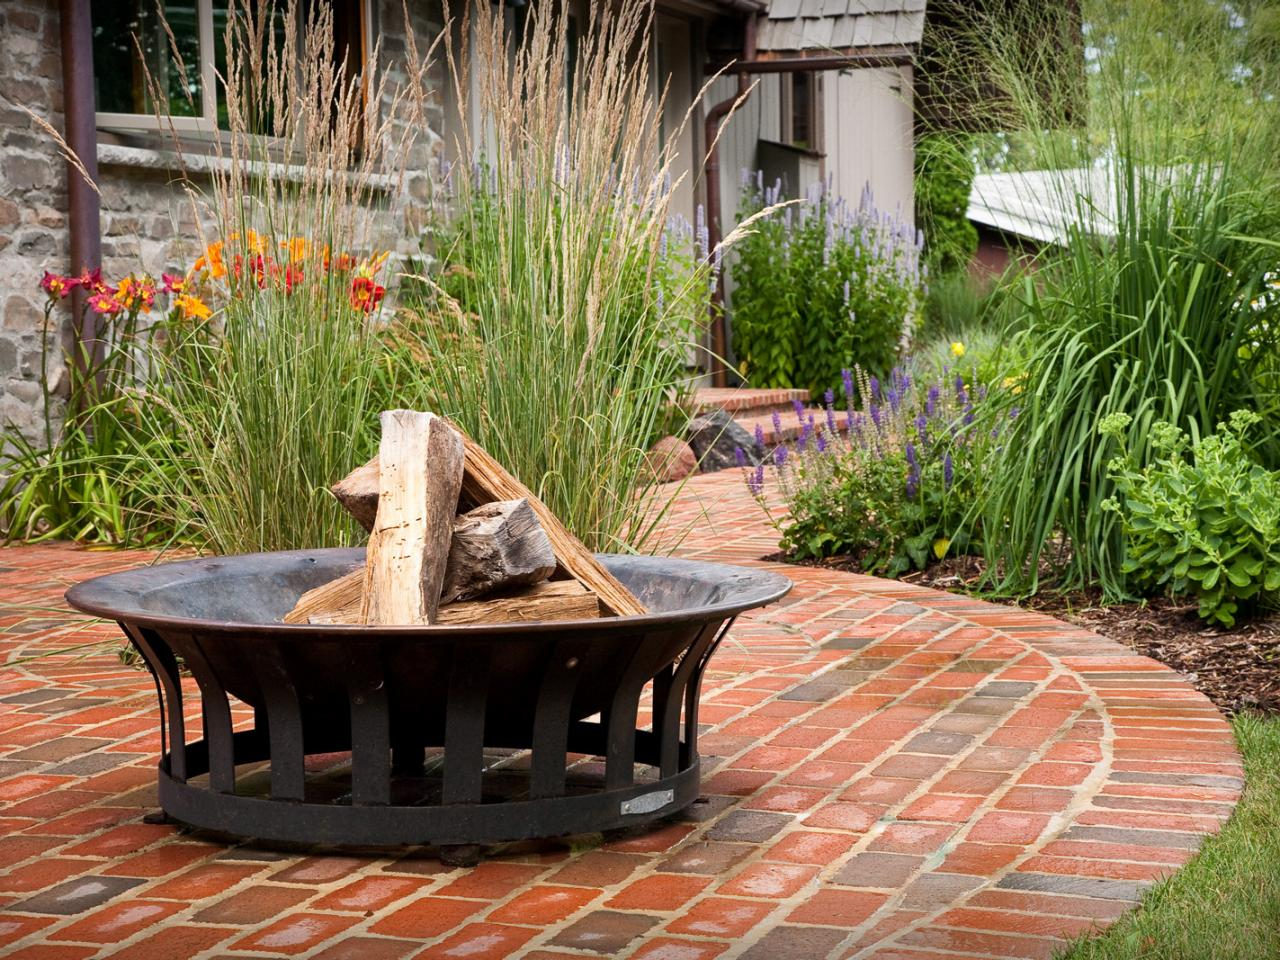 Petite and portable fire pit landscape designer james for Deco petit jardin exterieur